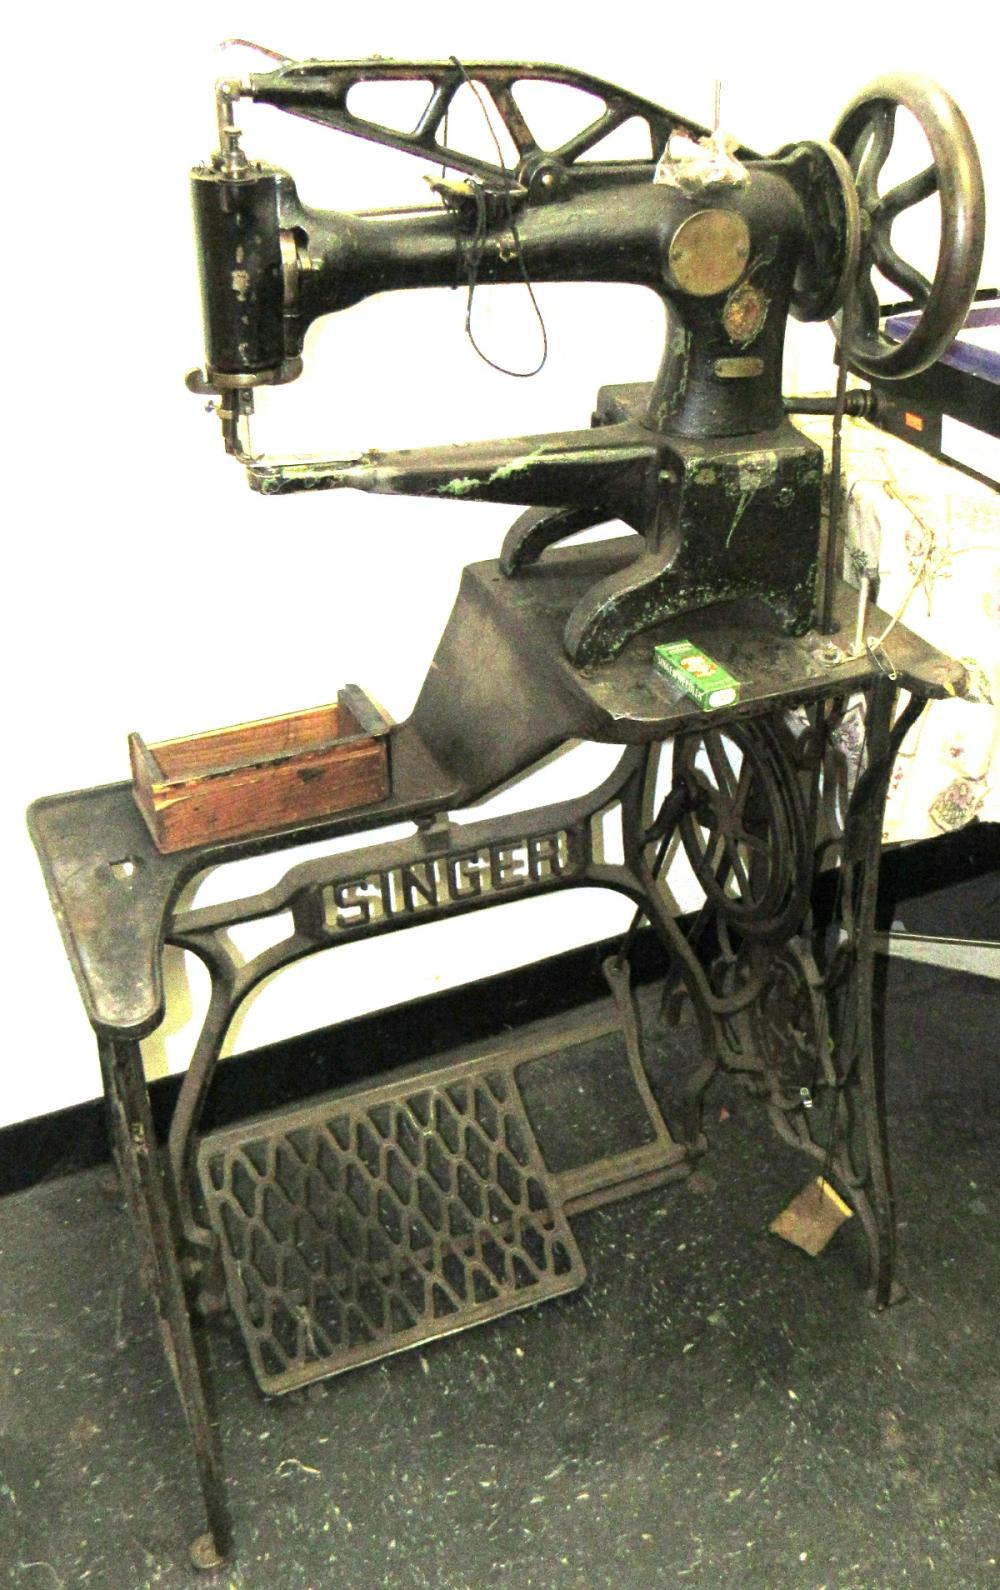 Lot 190: Singer Industrial Cylinder Arm Leather Sewing Machine with Stand,  All Responsibility for Shipping will be the Successful Bidder  You must